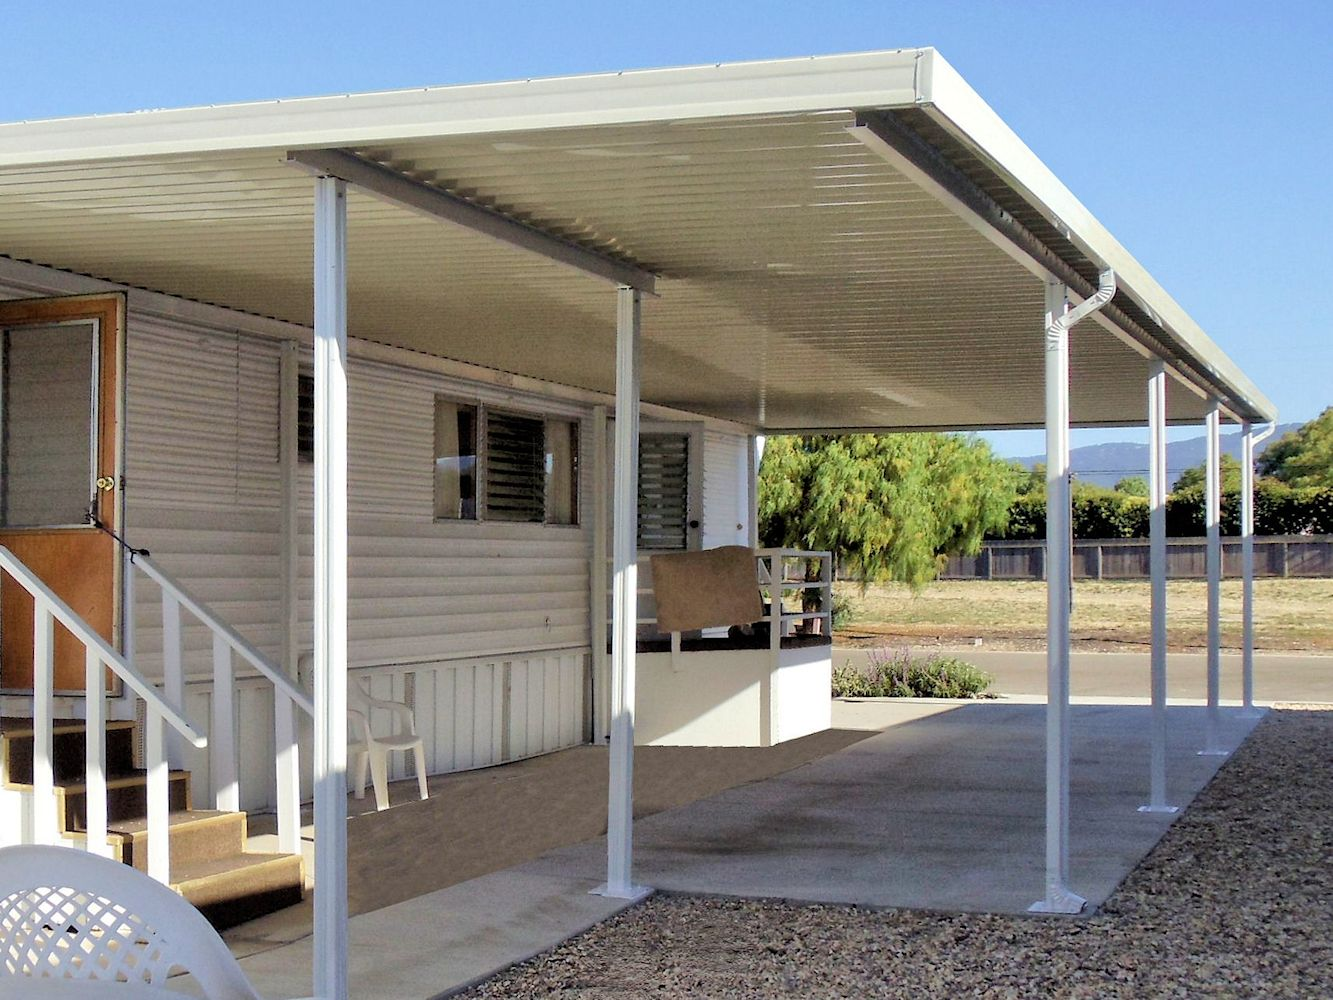 Tucson Mobile Home Awnings - Call us for your Awning (520 ... on double high mobile homes, liberty mobile homes, modular mobile homes, 2 story mobile homes, 3 story mobile homes, a frame mobile homes, fleetwood triple wide homes, neat mobile homes, used mobile homes, double wide motor homes, custom mobile homes, double wide homes and pricing, single mobile homes, ranch mobile homes, funny drawings mobile homes, back porches for mobile homes, multi level mobile homes, garden mobile homes, cabin mobile homes,